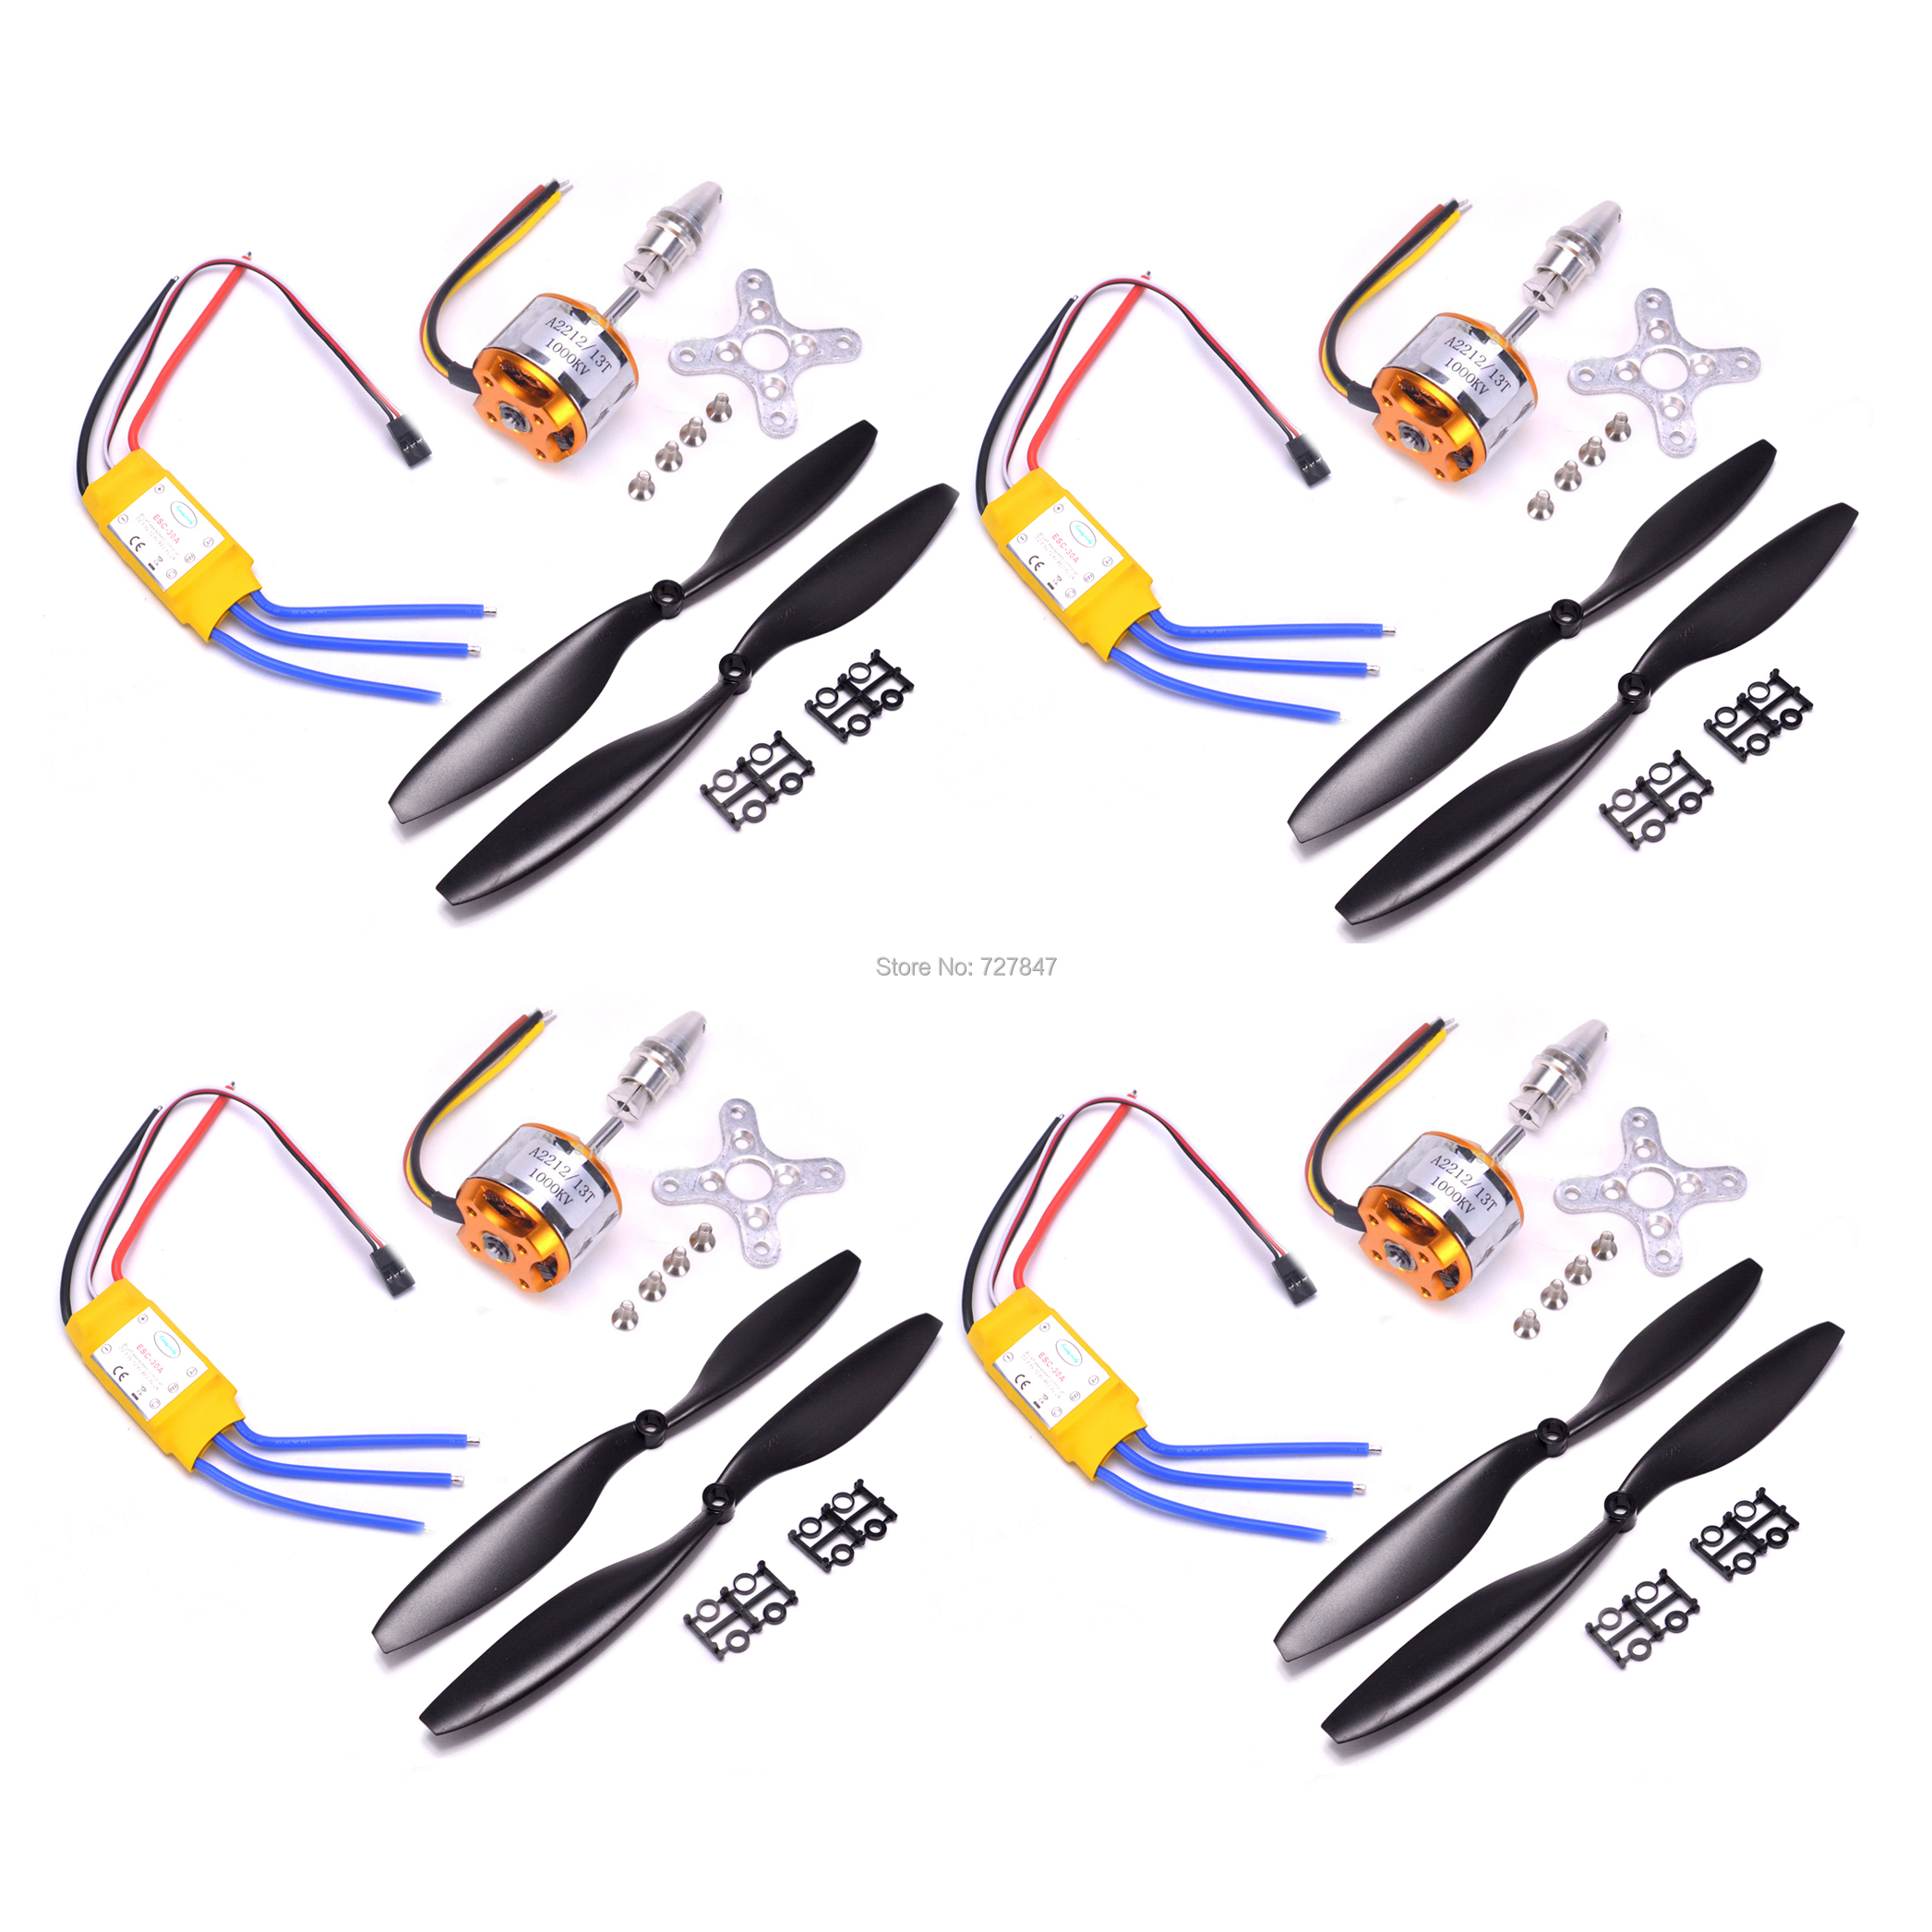 A2212 2212 1000KV / 1400KV A2208 1100KV Brushless Outrunner Motor 30A ESC 1045 Propeller Quad-Rotor For RC Aircraft Multicopter